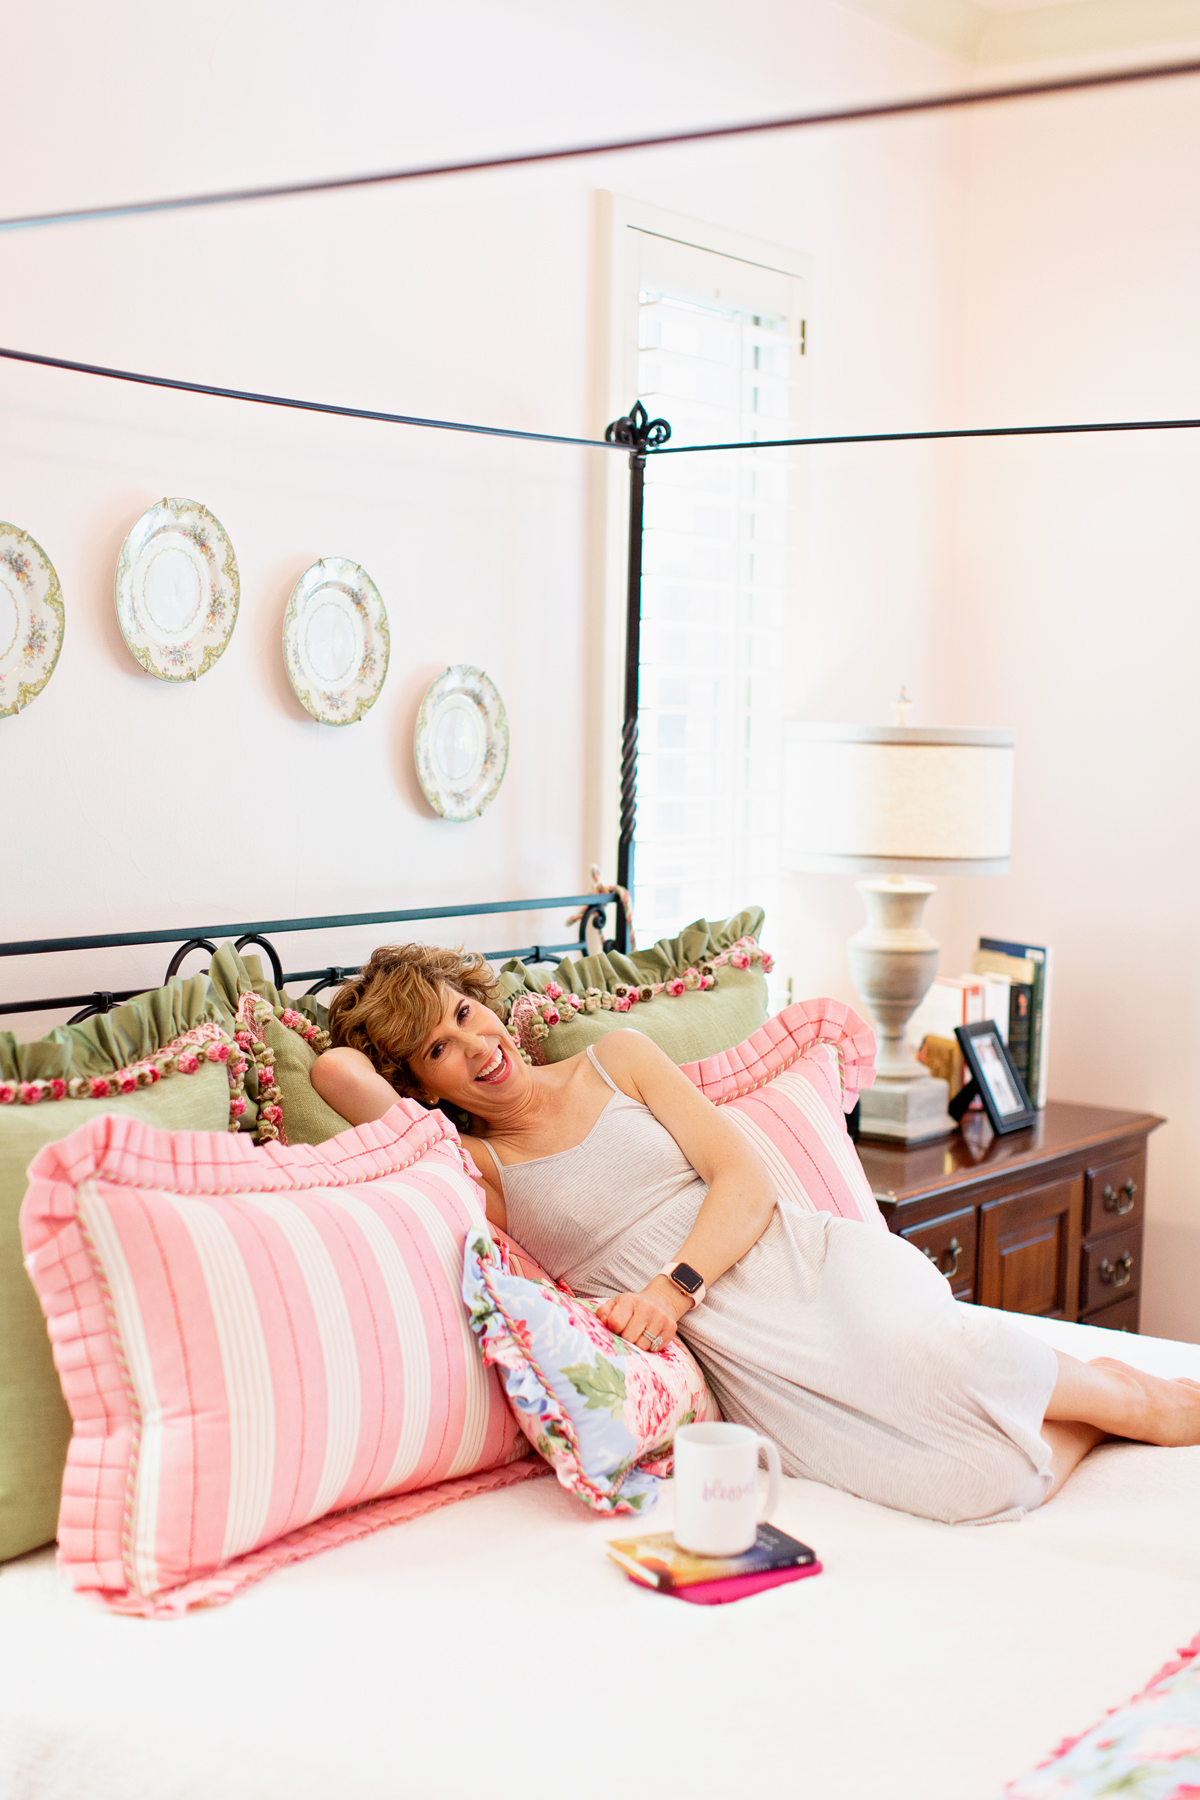 woman in nightgown on her bed with head on decorative pillows